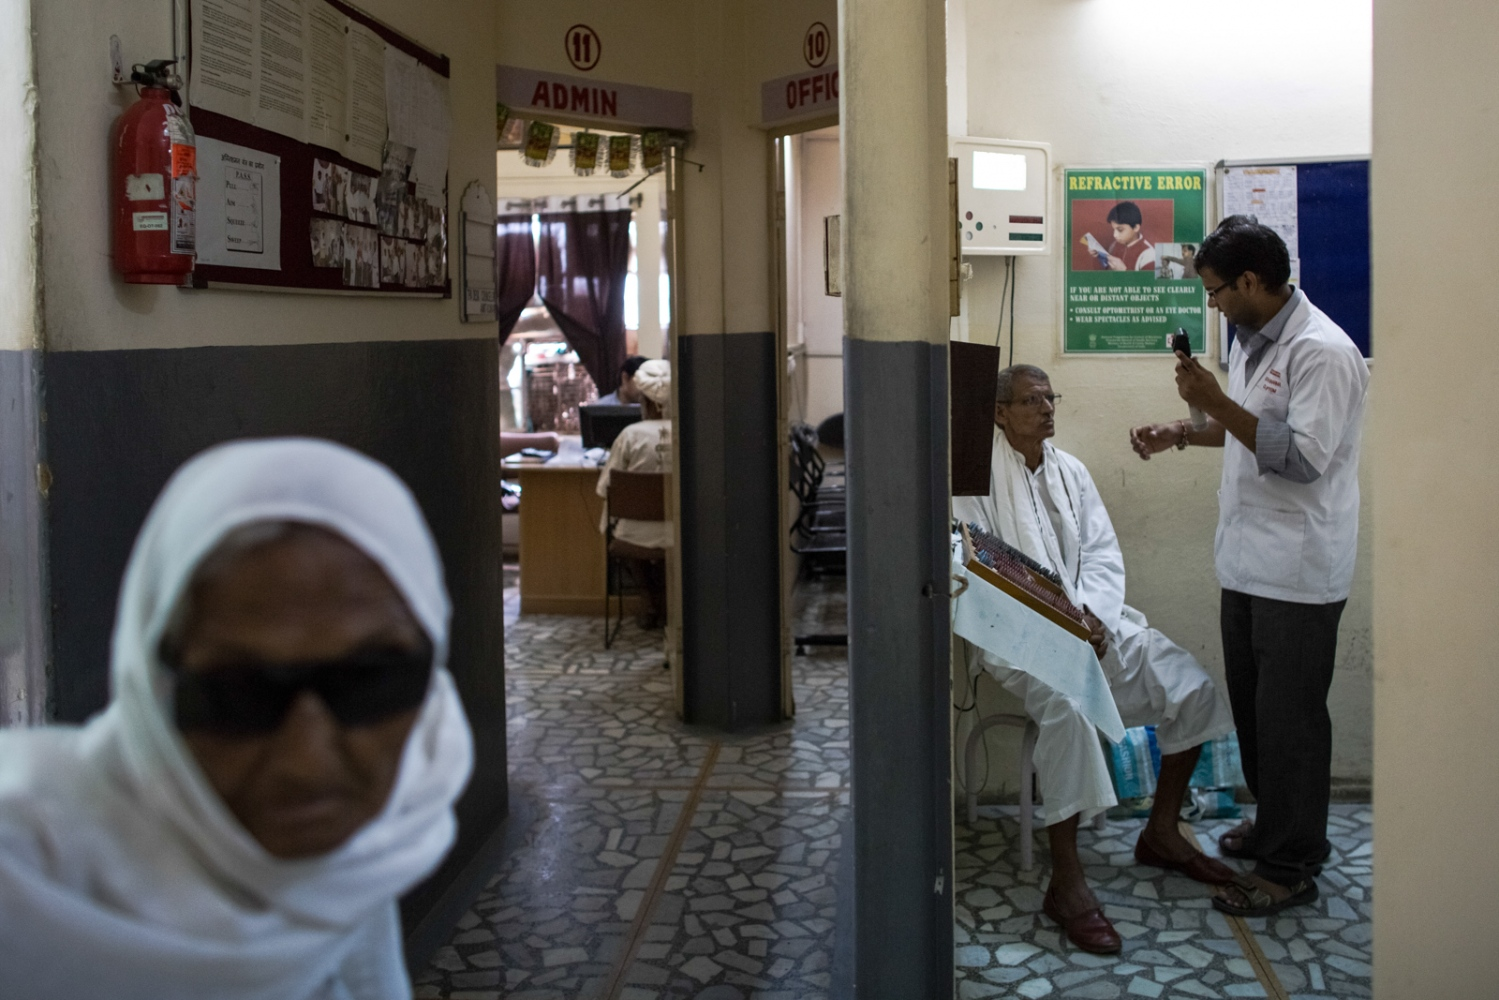 Indian patient walks past an examination room as another undergoes an eye test at the Dr Shroff Charity Eye Hospital in Alwar in the state of Rajasthan on August 28, 2014.